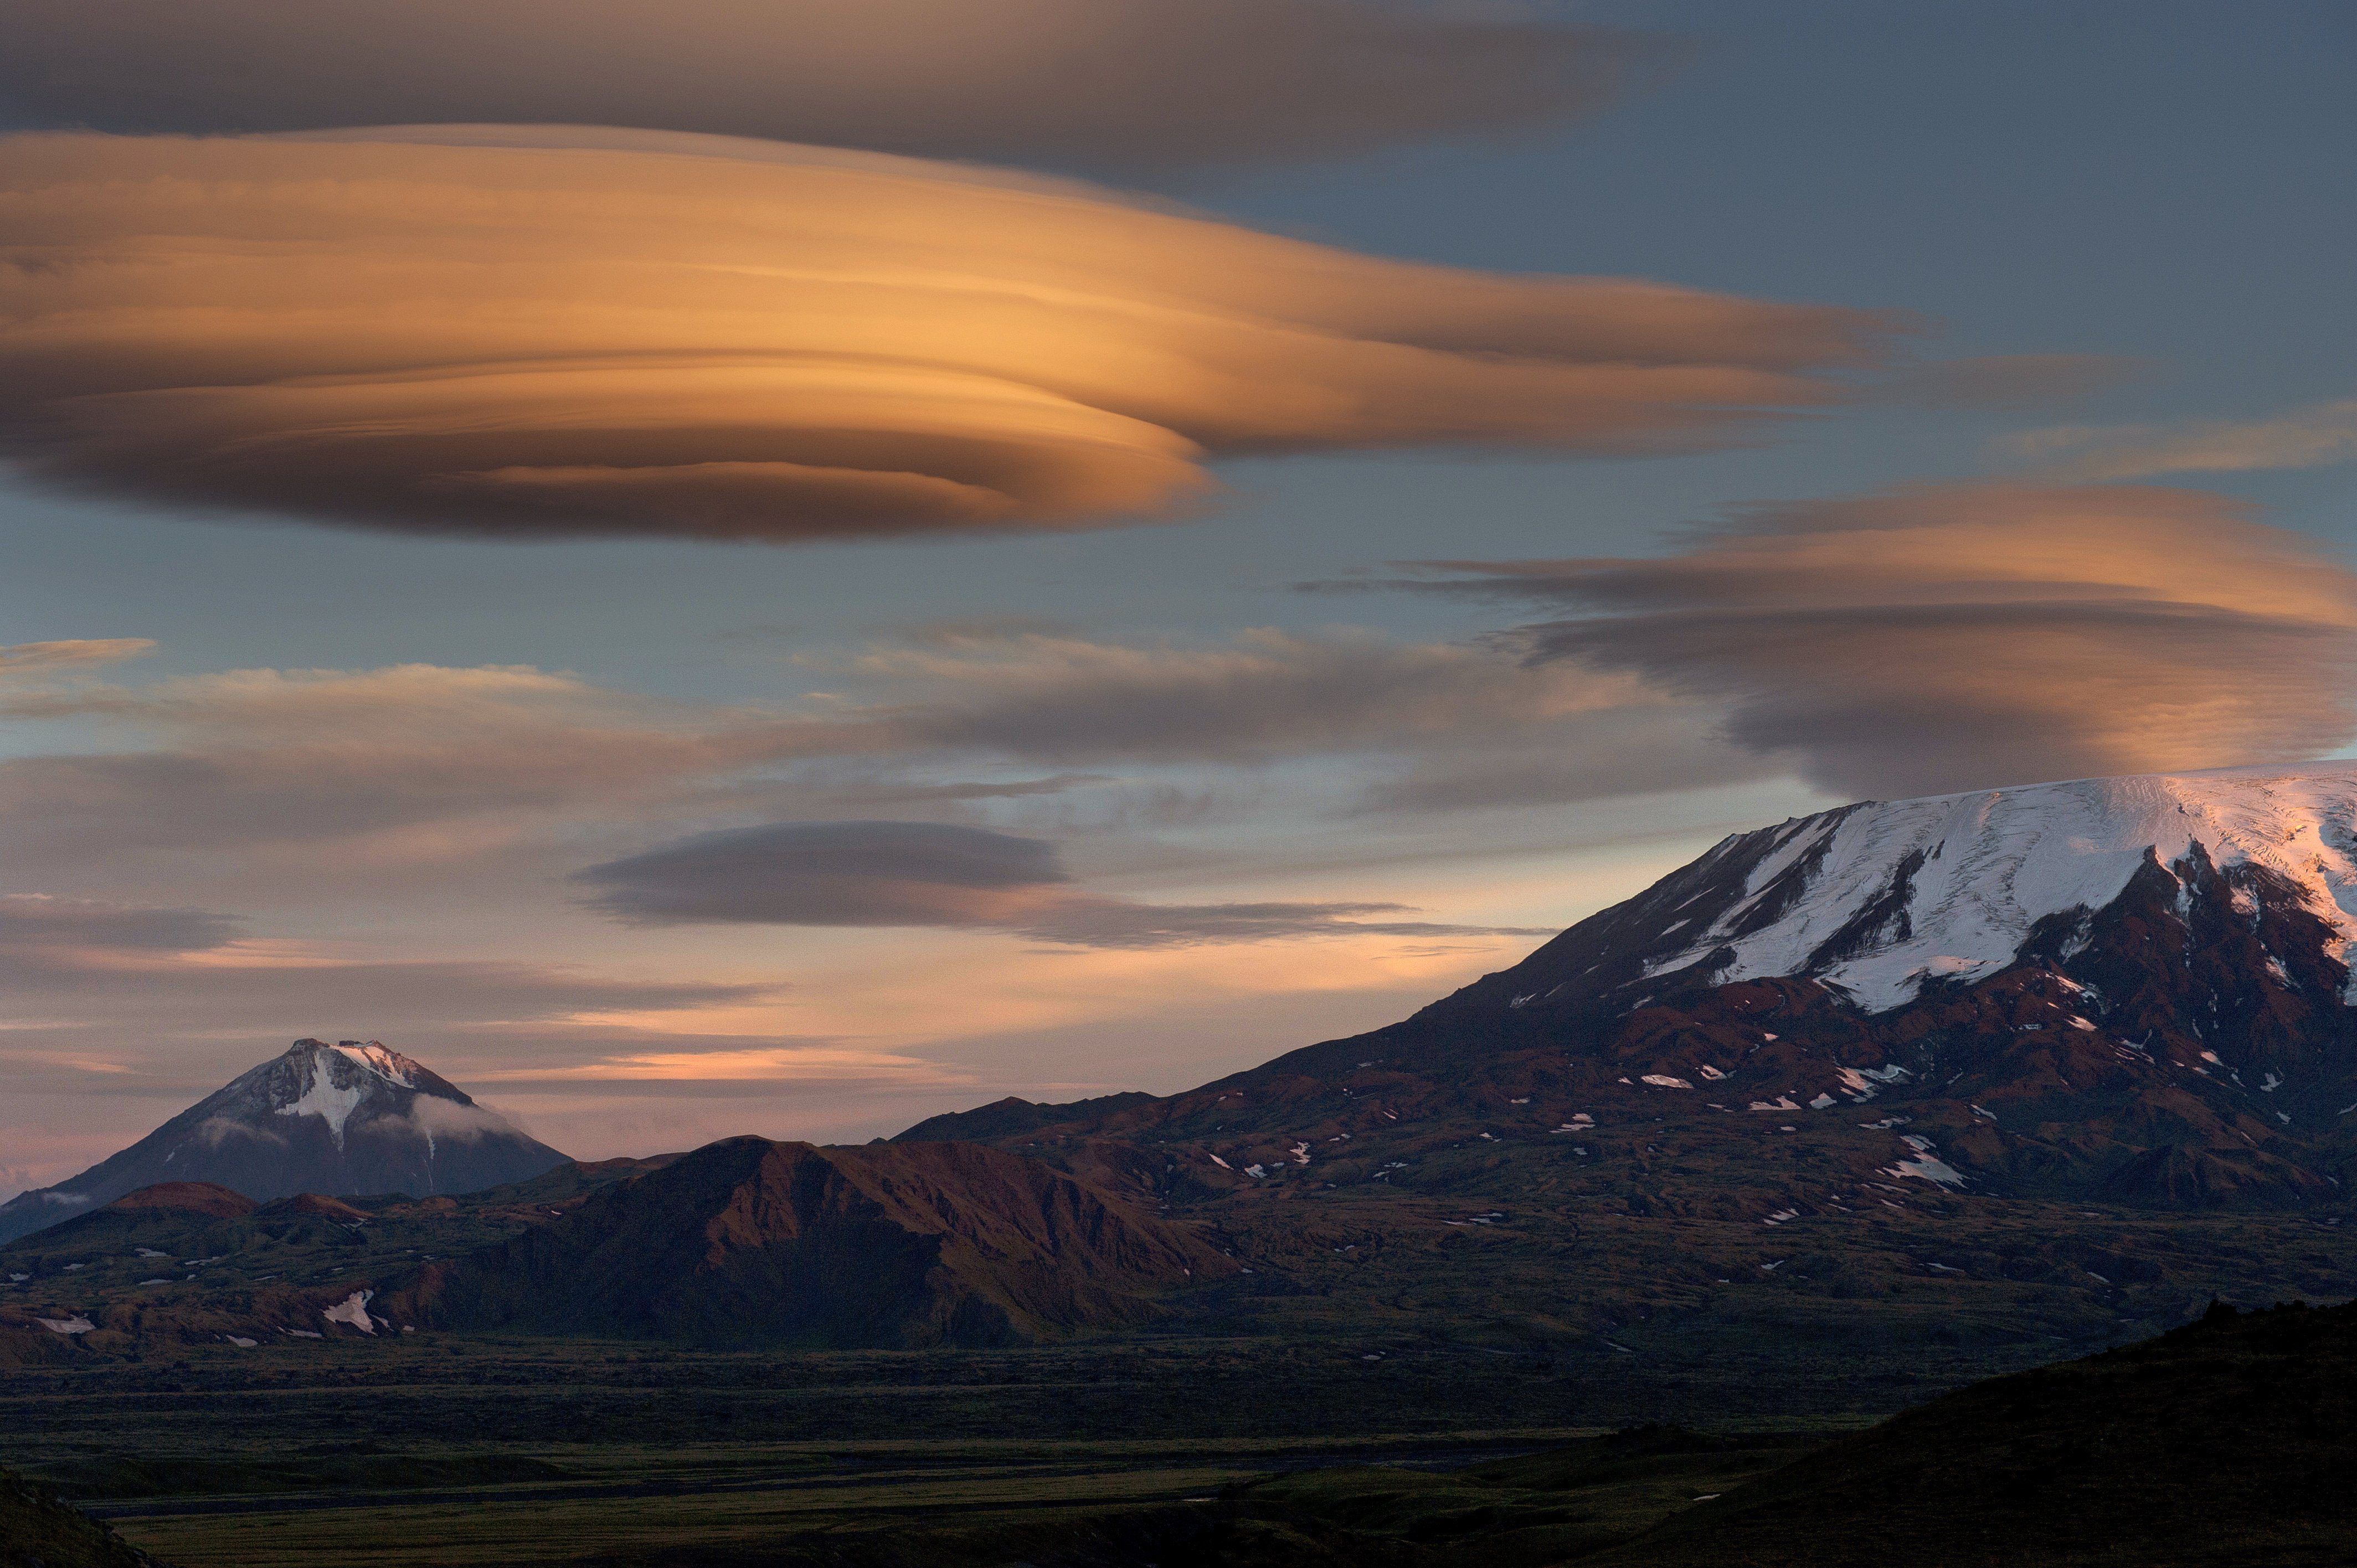 Russia, Kamchatka, a view of the volcanoes Flat Tolbachik and Ostry,lenticular cloud